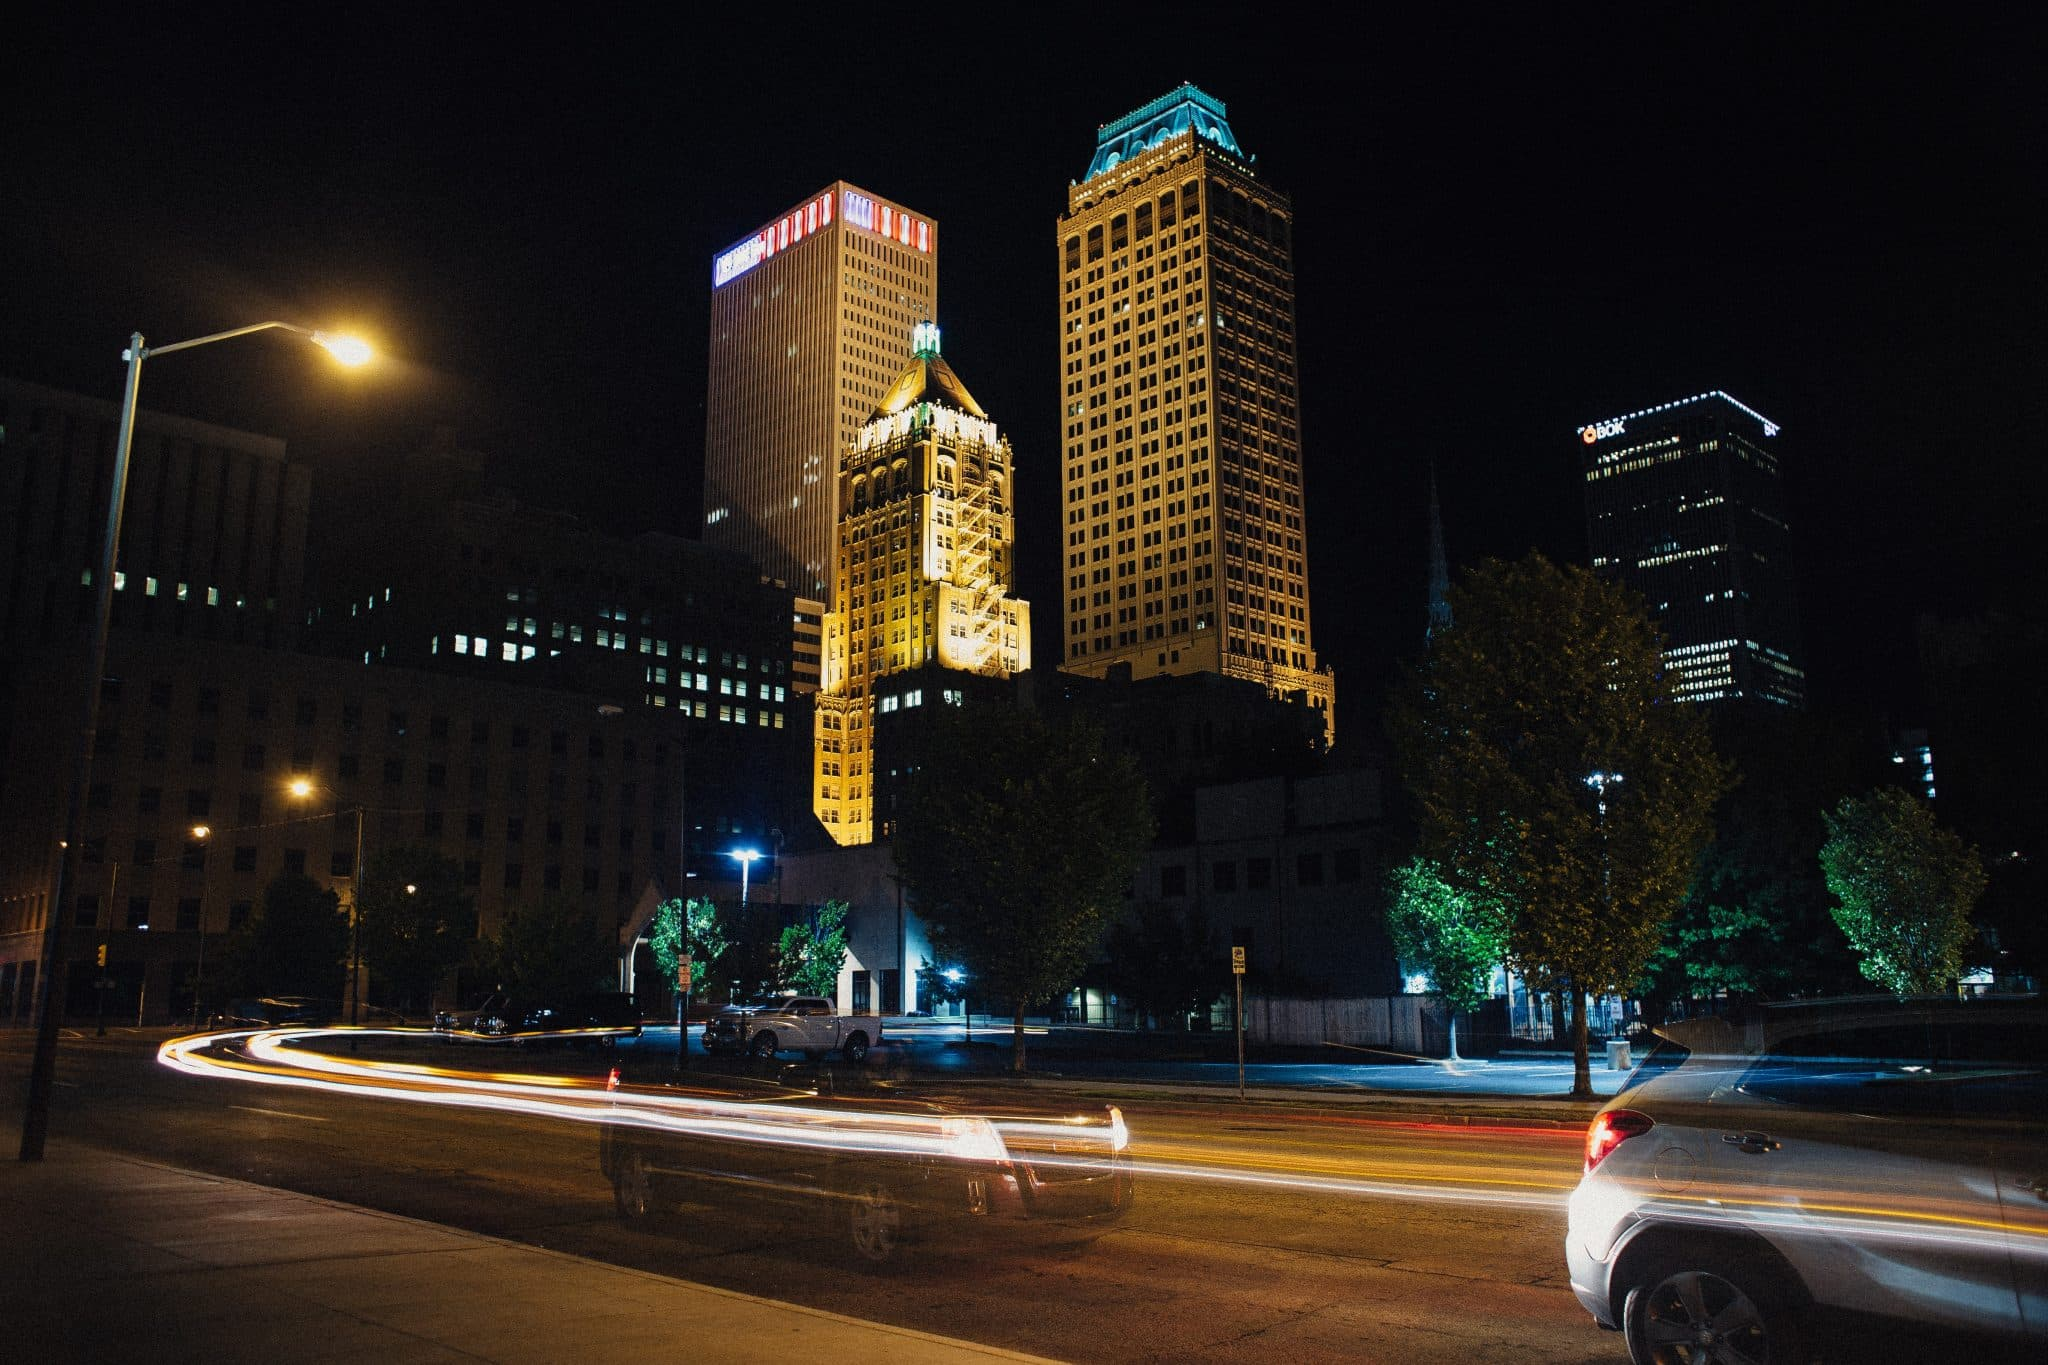 Things to do in Tulsa